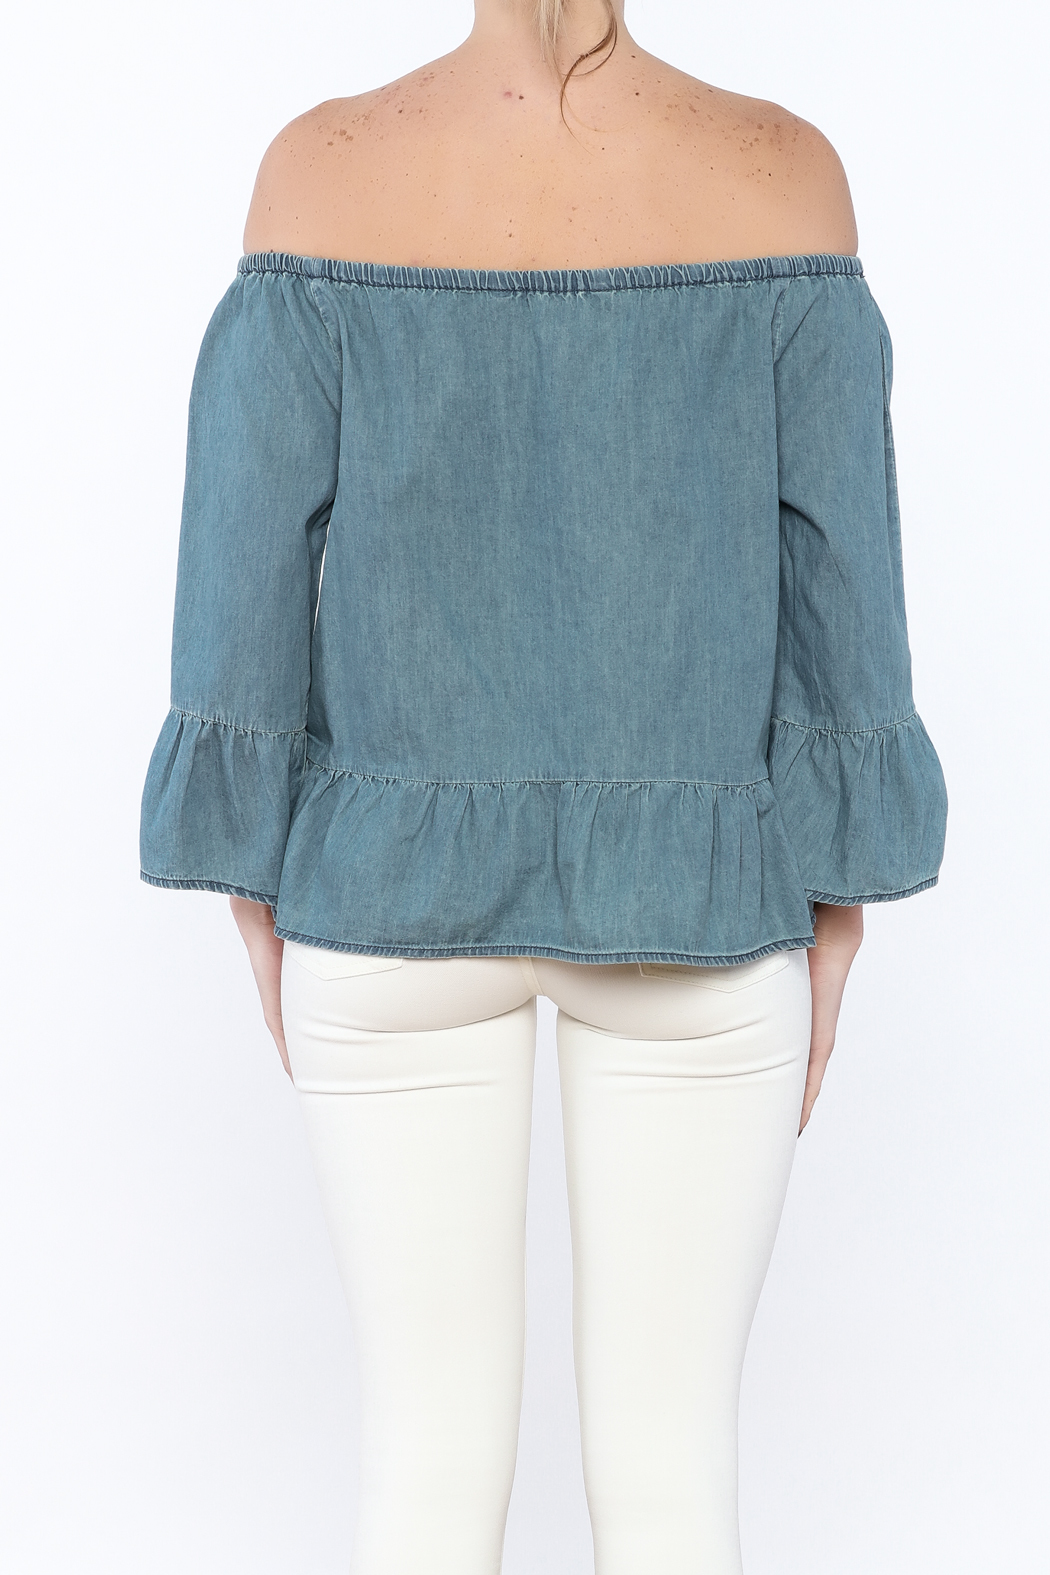 Cupcakes & Cashmere Off-Shoulder Chambray Blouse - Back Cropped Image